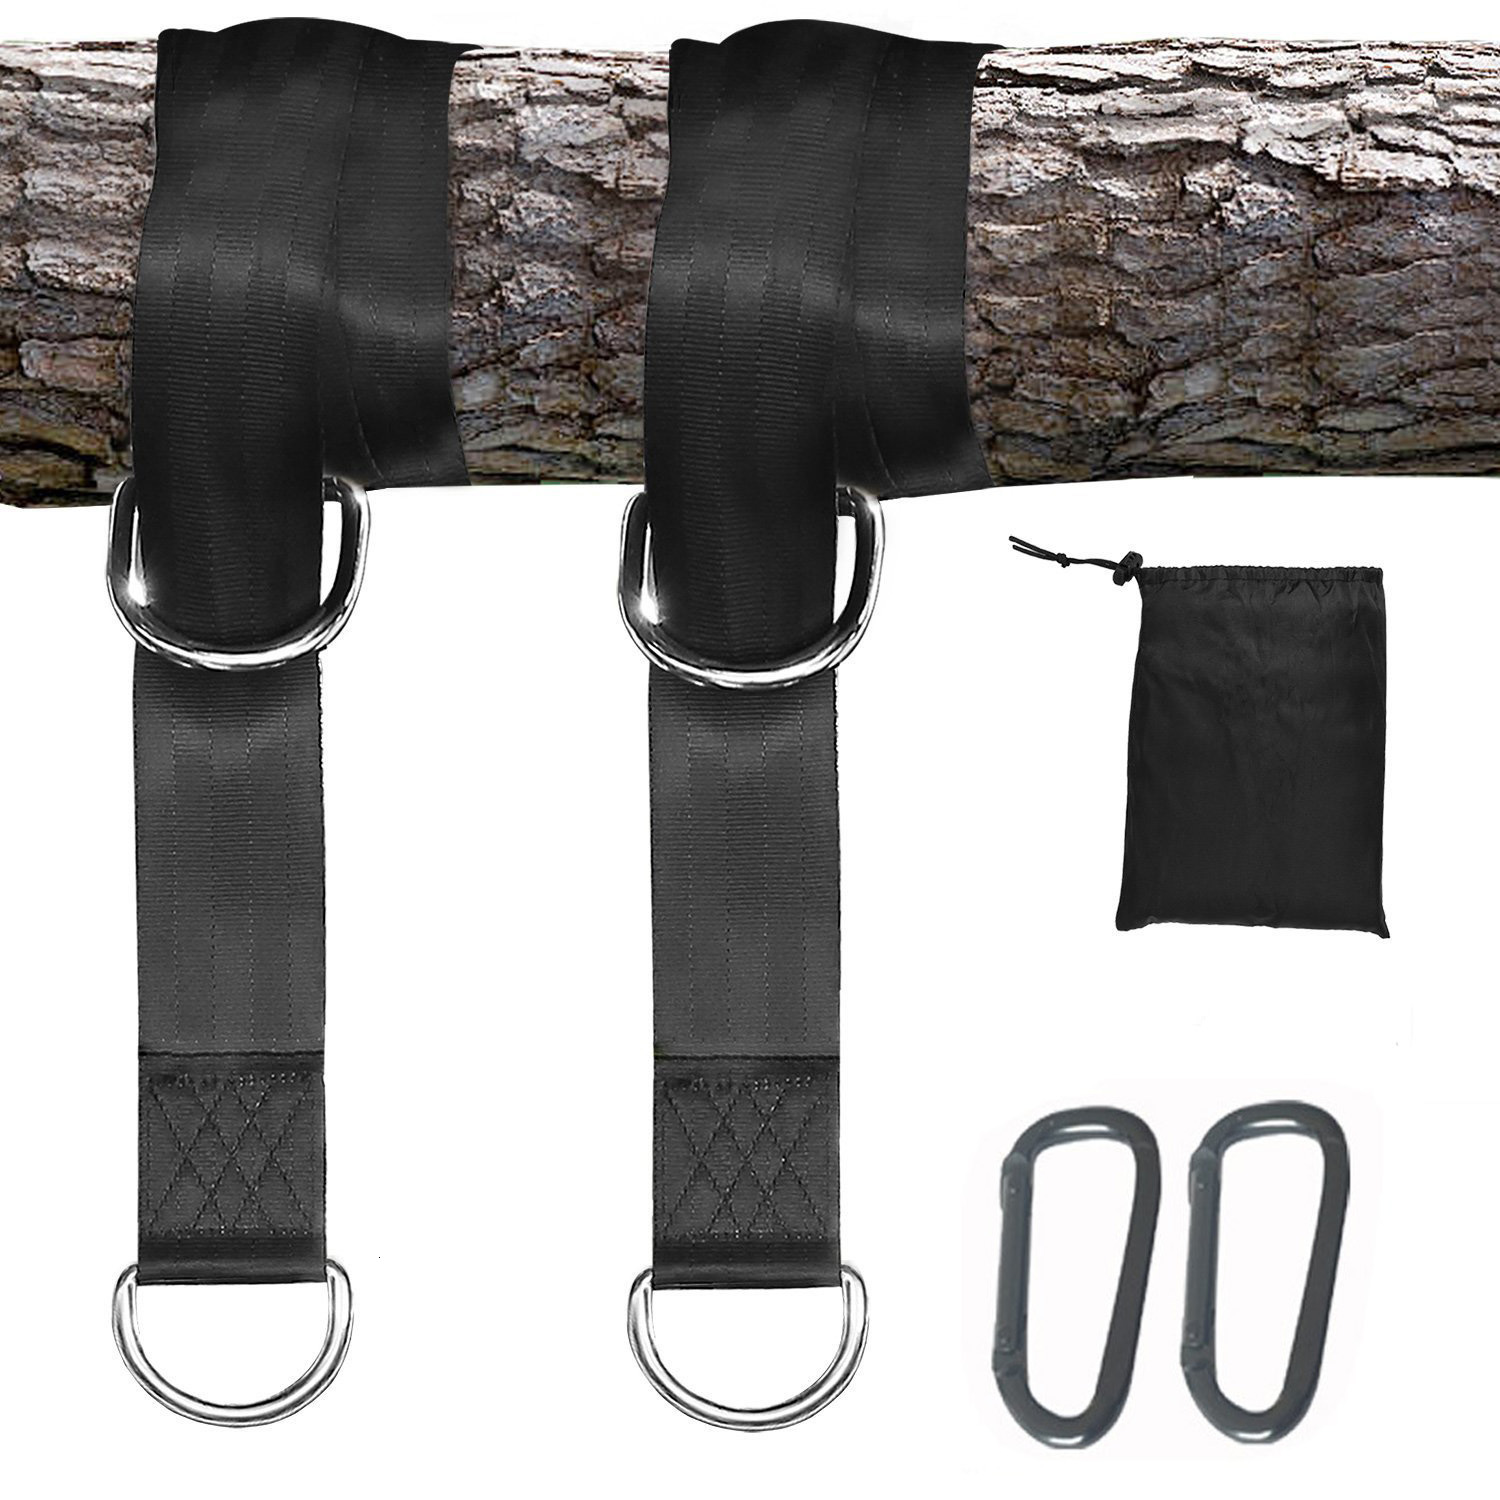 Outdoors Hammock Special Bandage 5*150cm 350 KG Load Capacity Hammock Straps Rope Carabiner